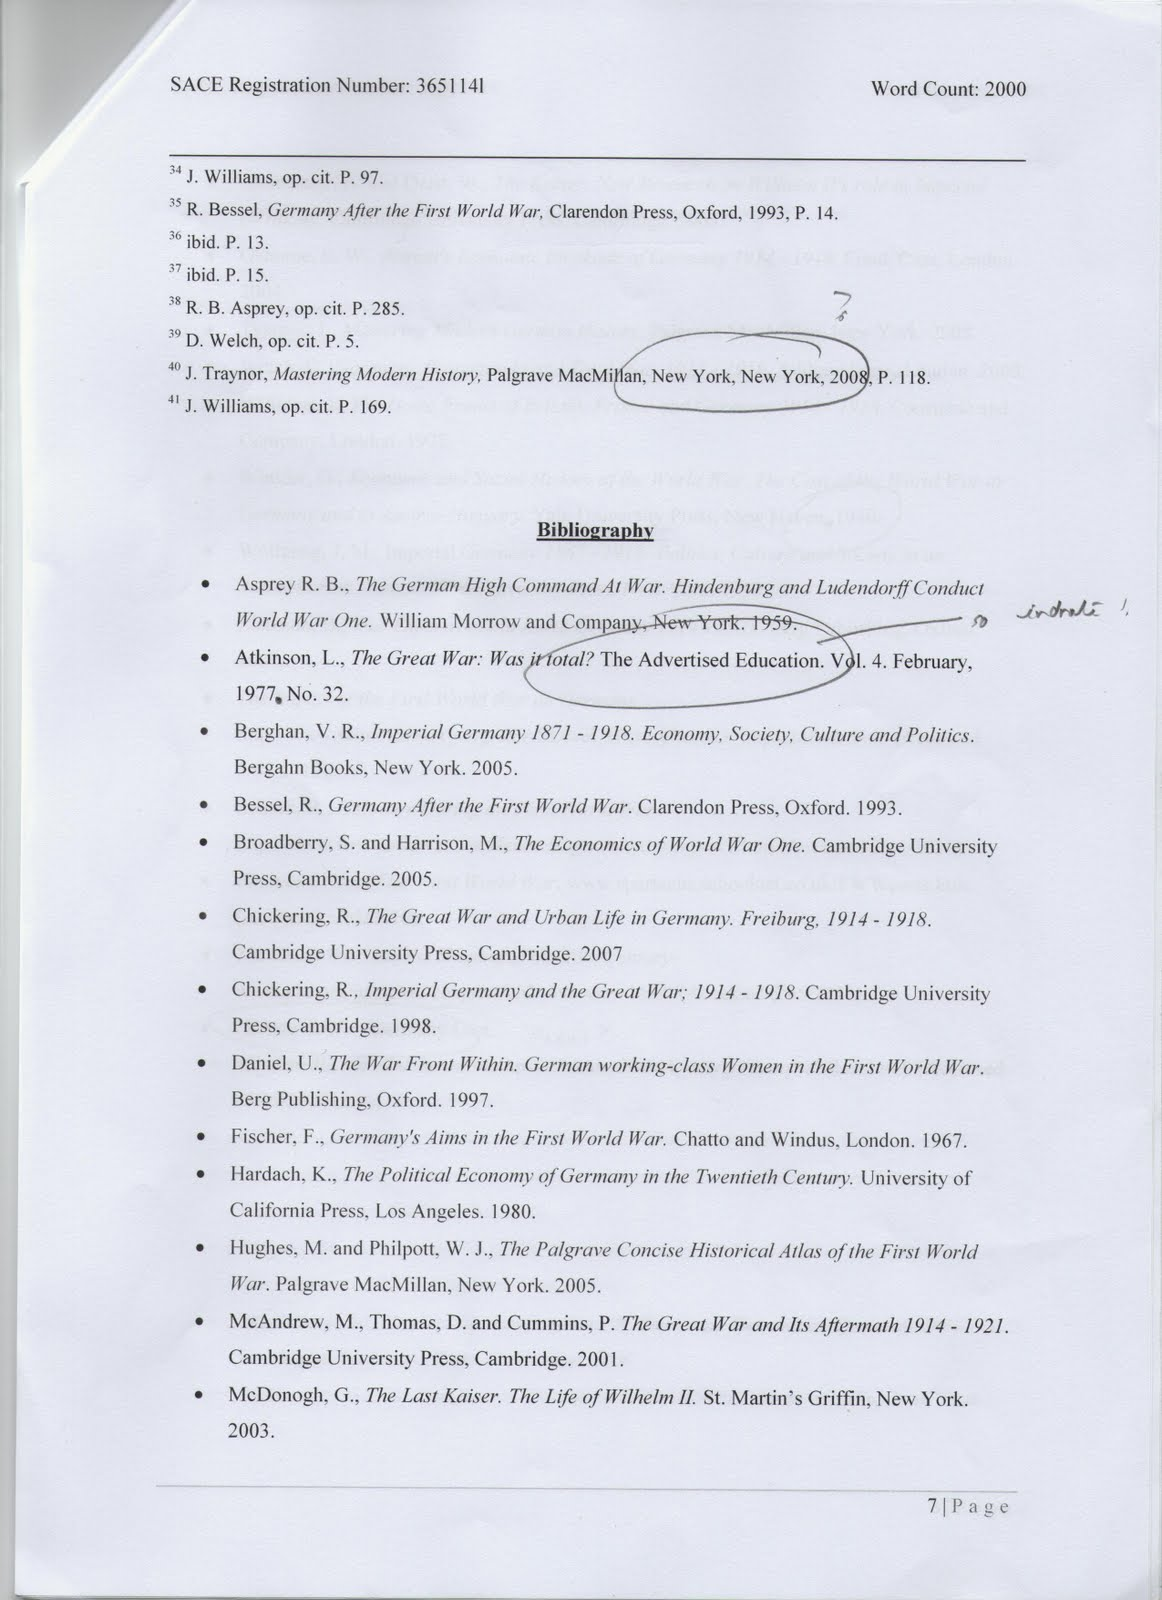 005 Endnotes2bbibliography1 Why Uchicago Essay Fearsome Length Examples Full